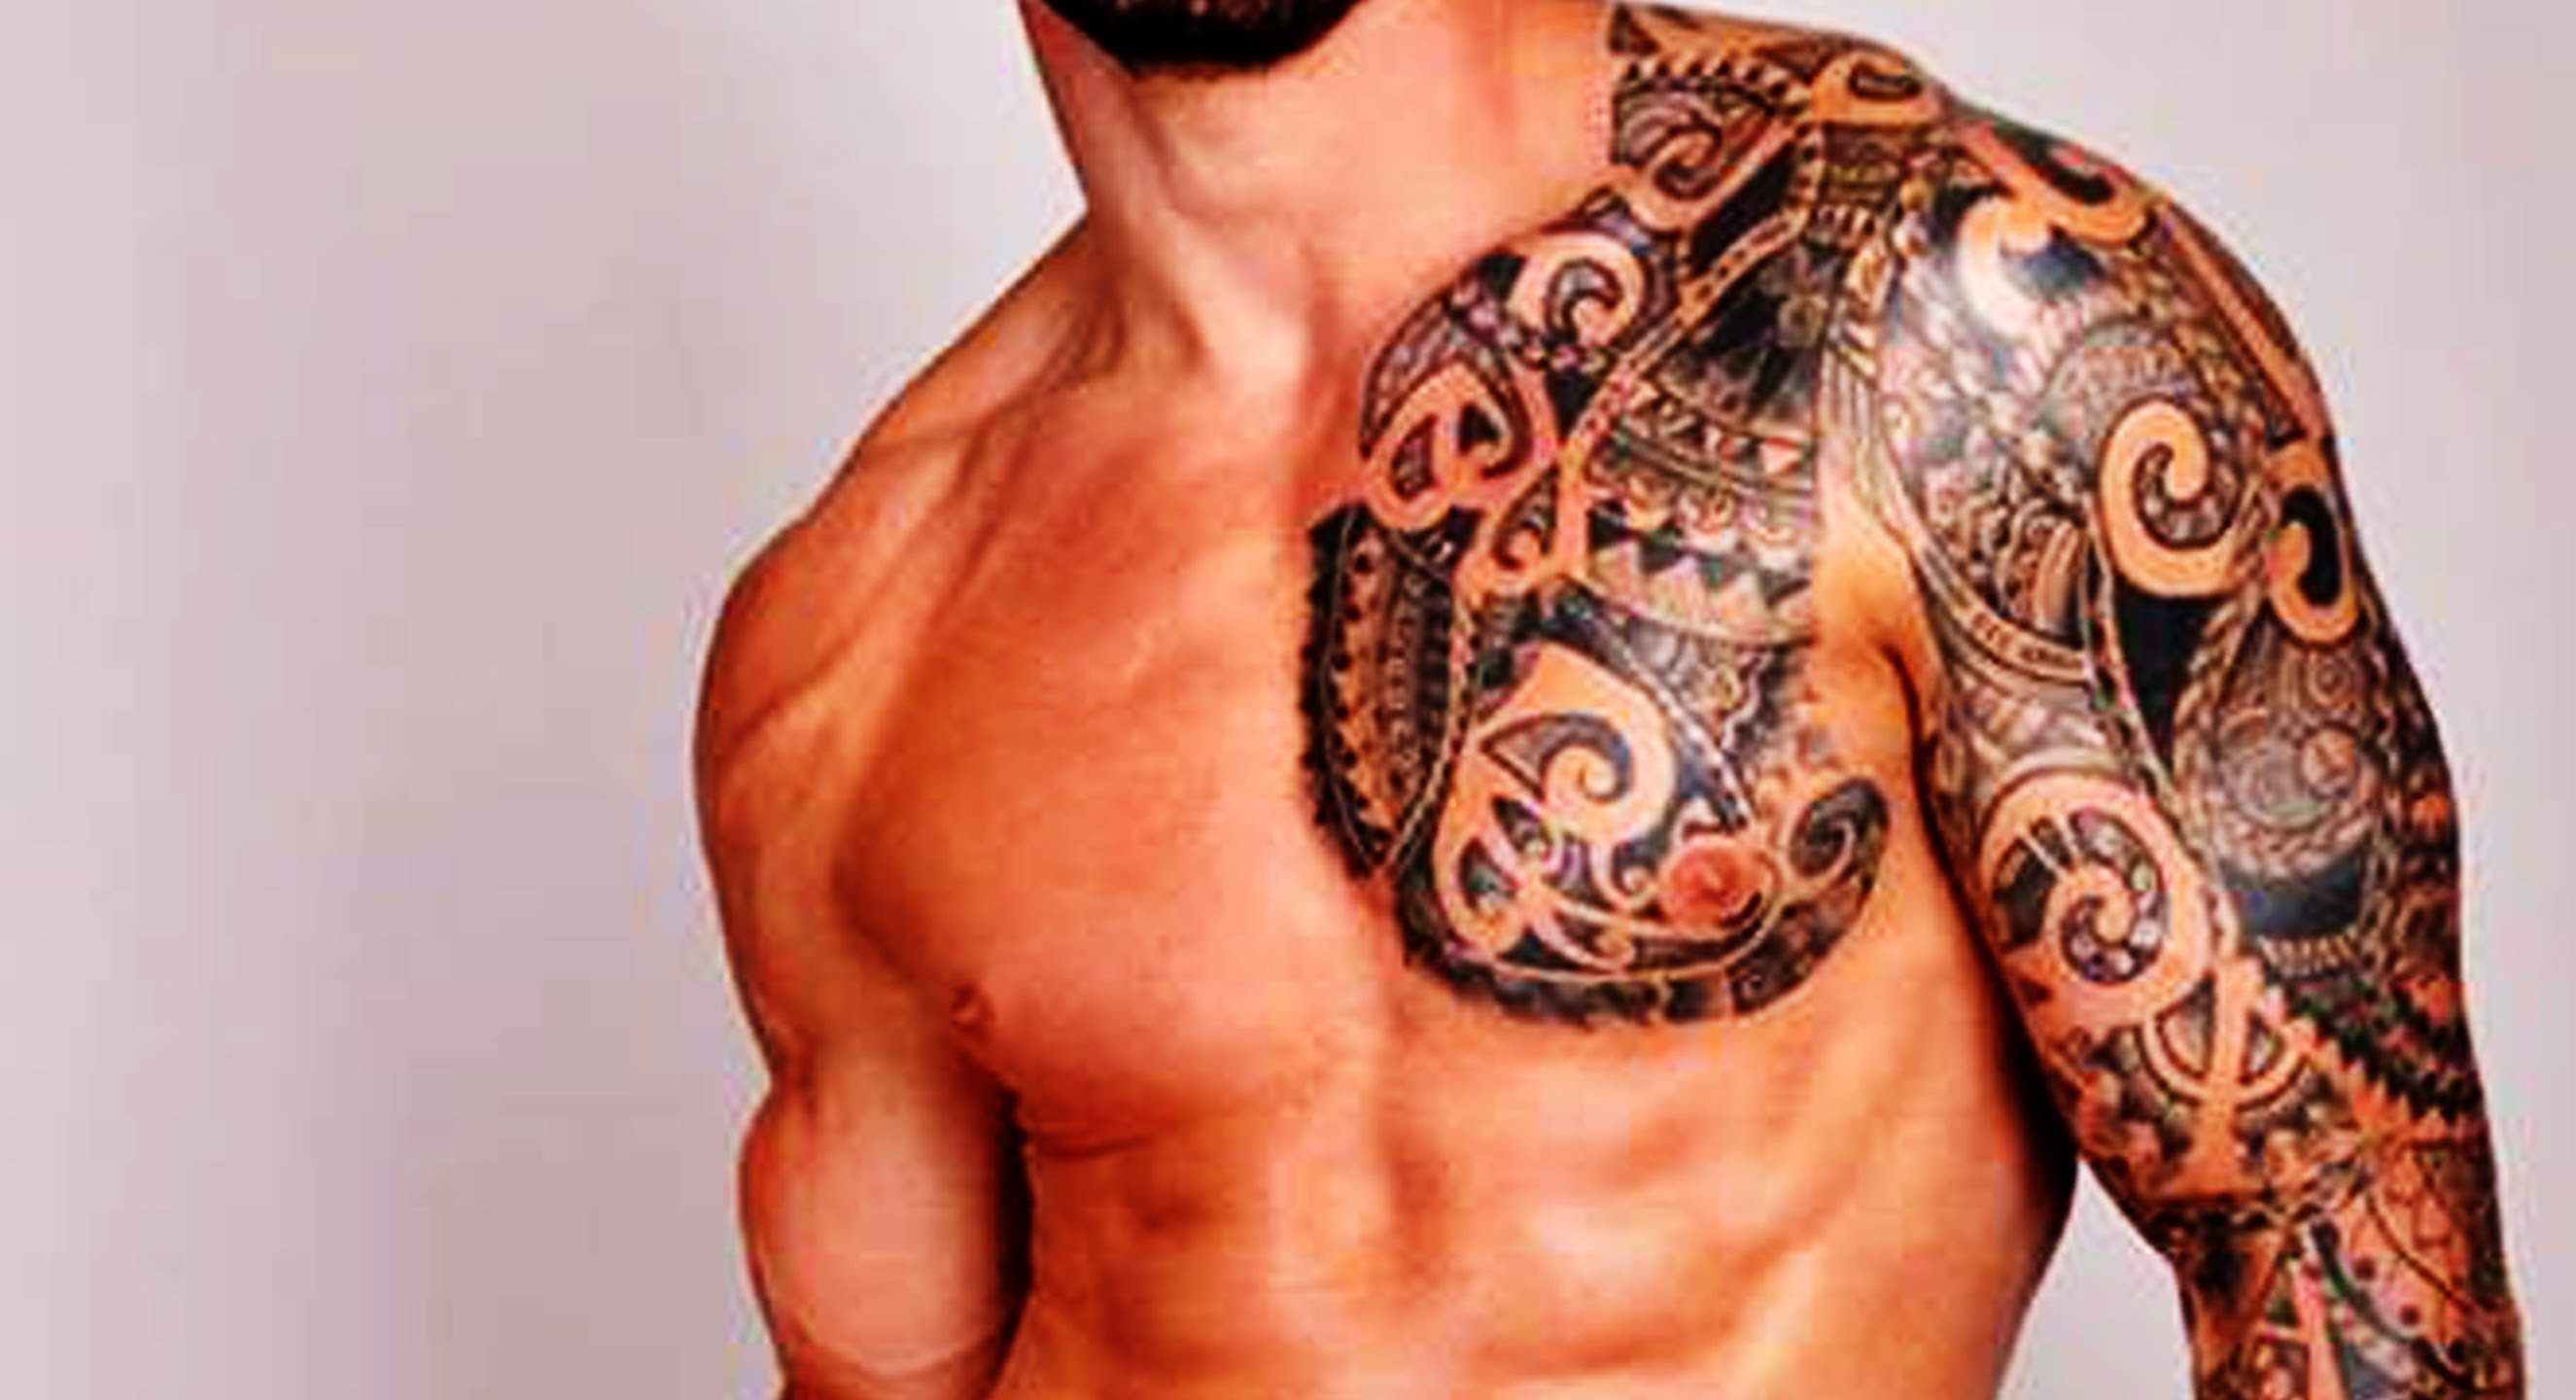 10 Stunning Cool Tattoos Ideas For Guys amazing tattoo ideas for men new designs hd youtube 2 2020